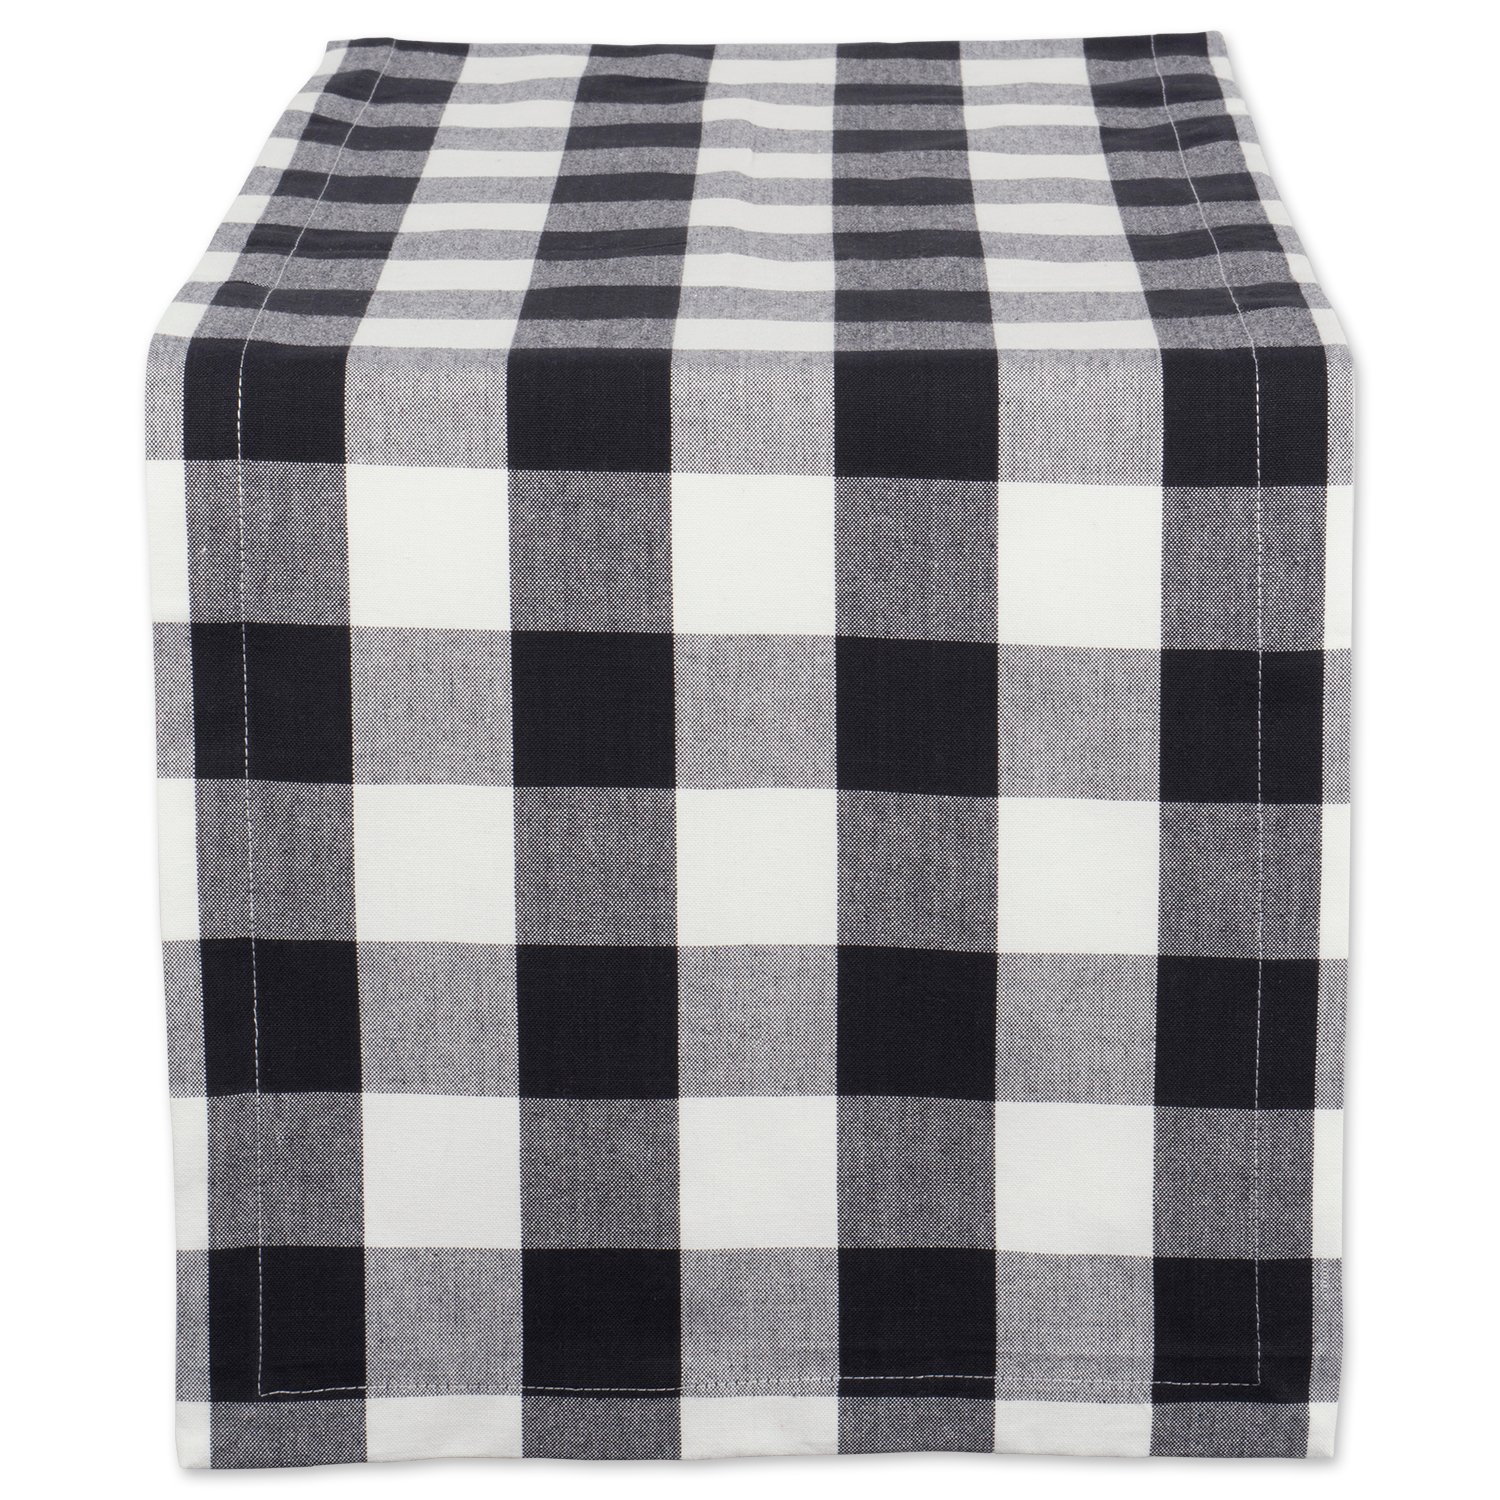 DII Cotton Buffalo Check Table Runner for Family Dinners or Gatherings, Indoor or Outdoor Parties, & Everyday Use (14x108'',  Seats 8-10 People), Black & White by DII